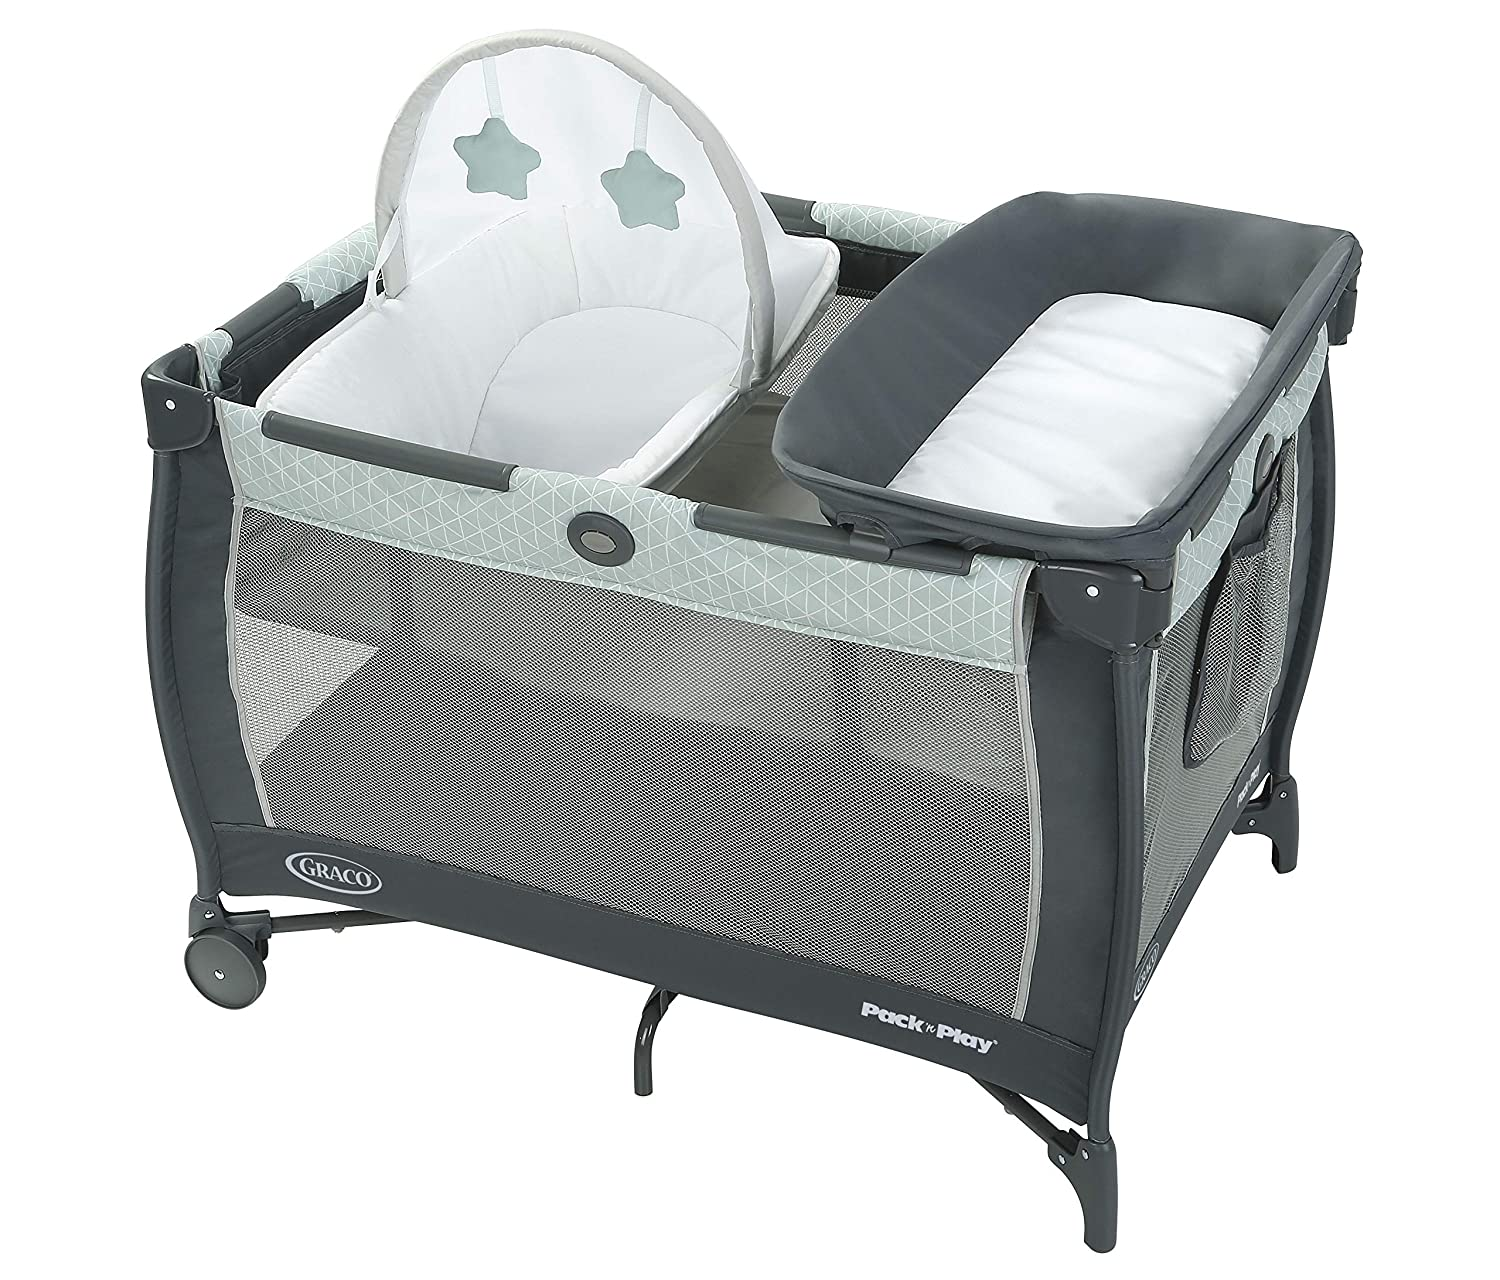 Graco Pack n Play Care Suite Playard, Winfield